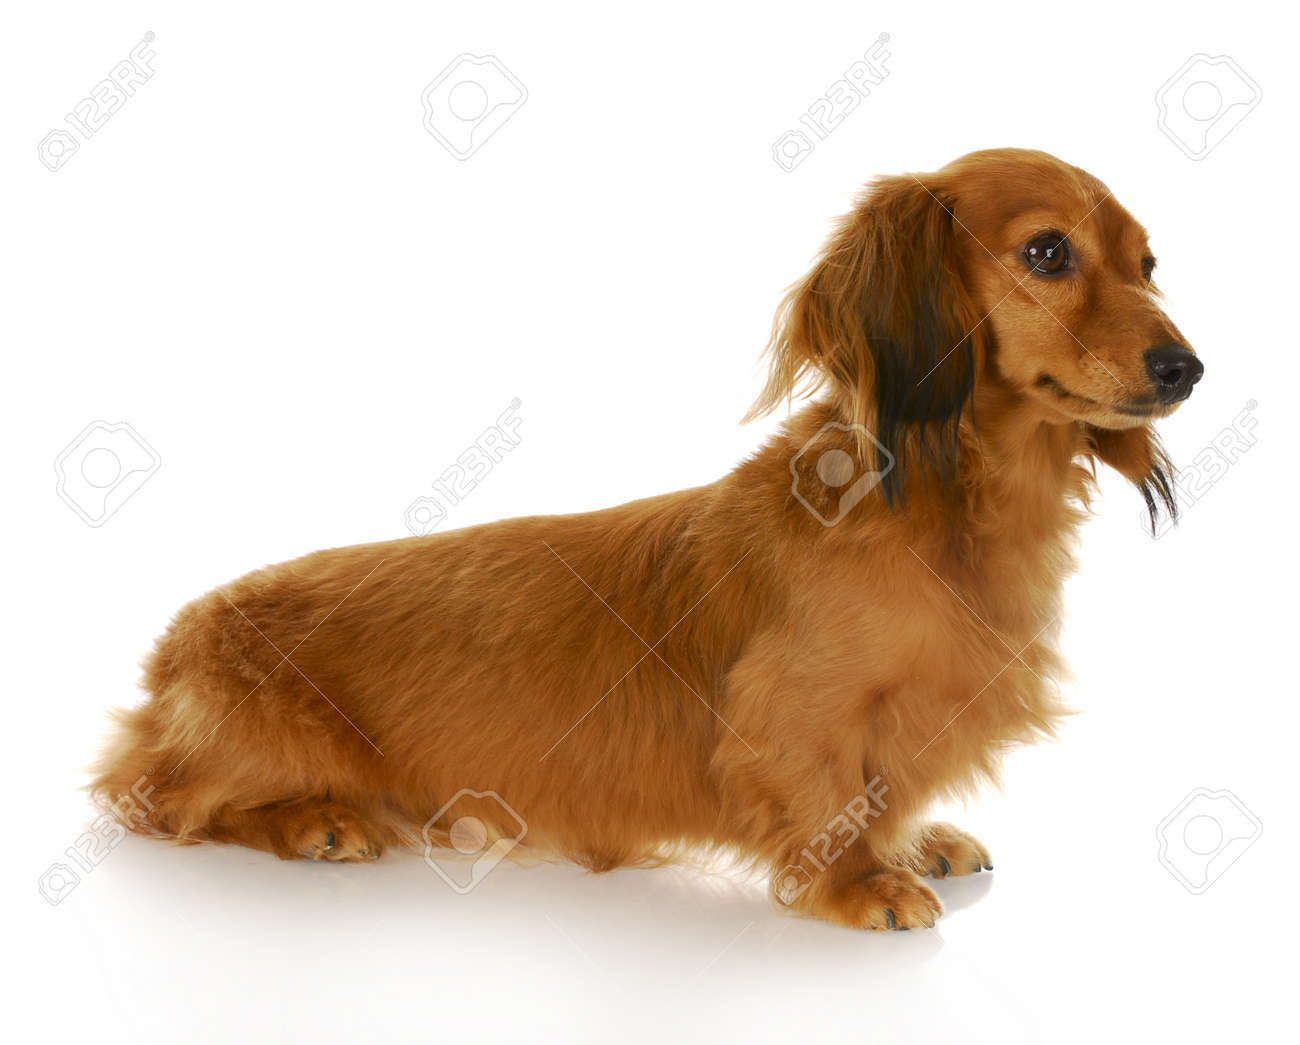 long haired miniature dachshund sitting with reflection on white background Stock Photo - 8388407